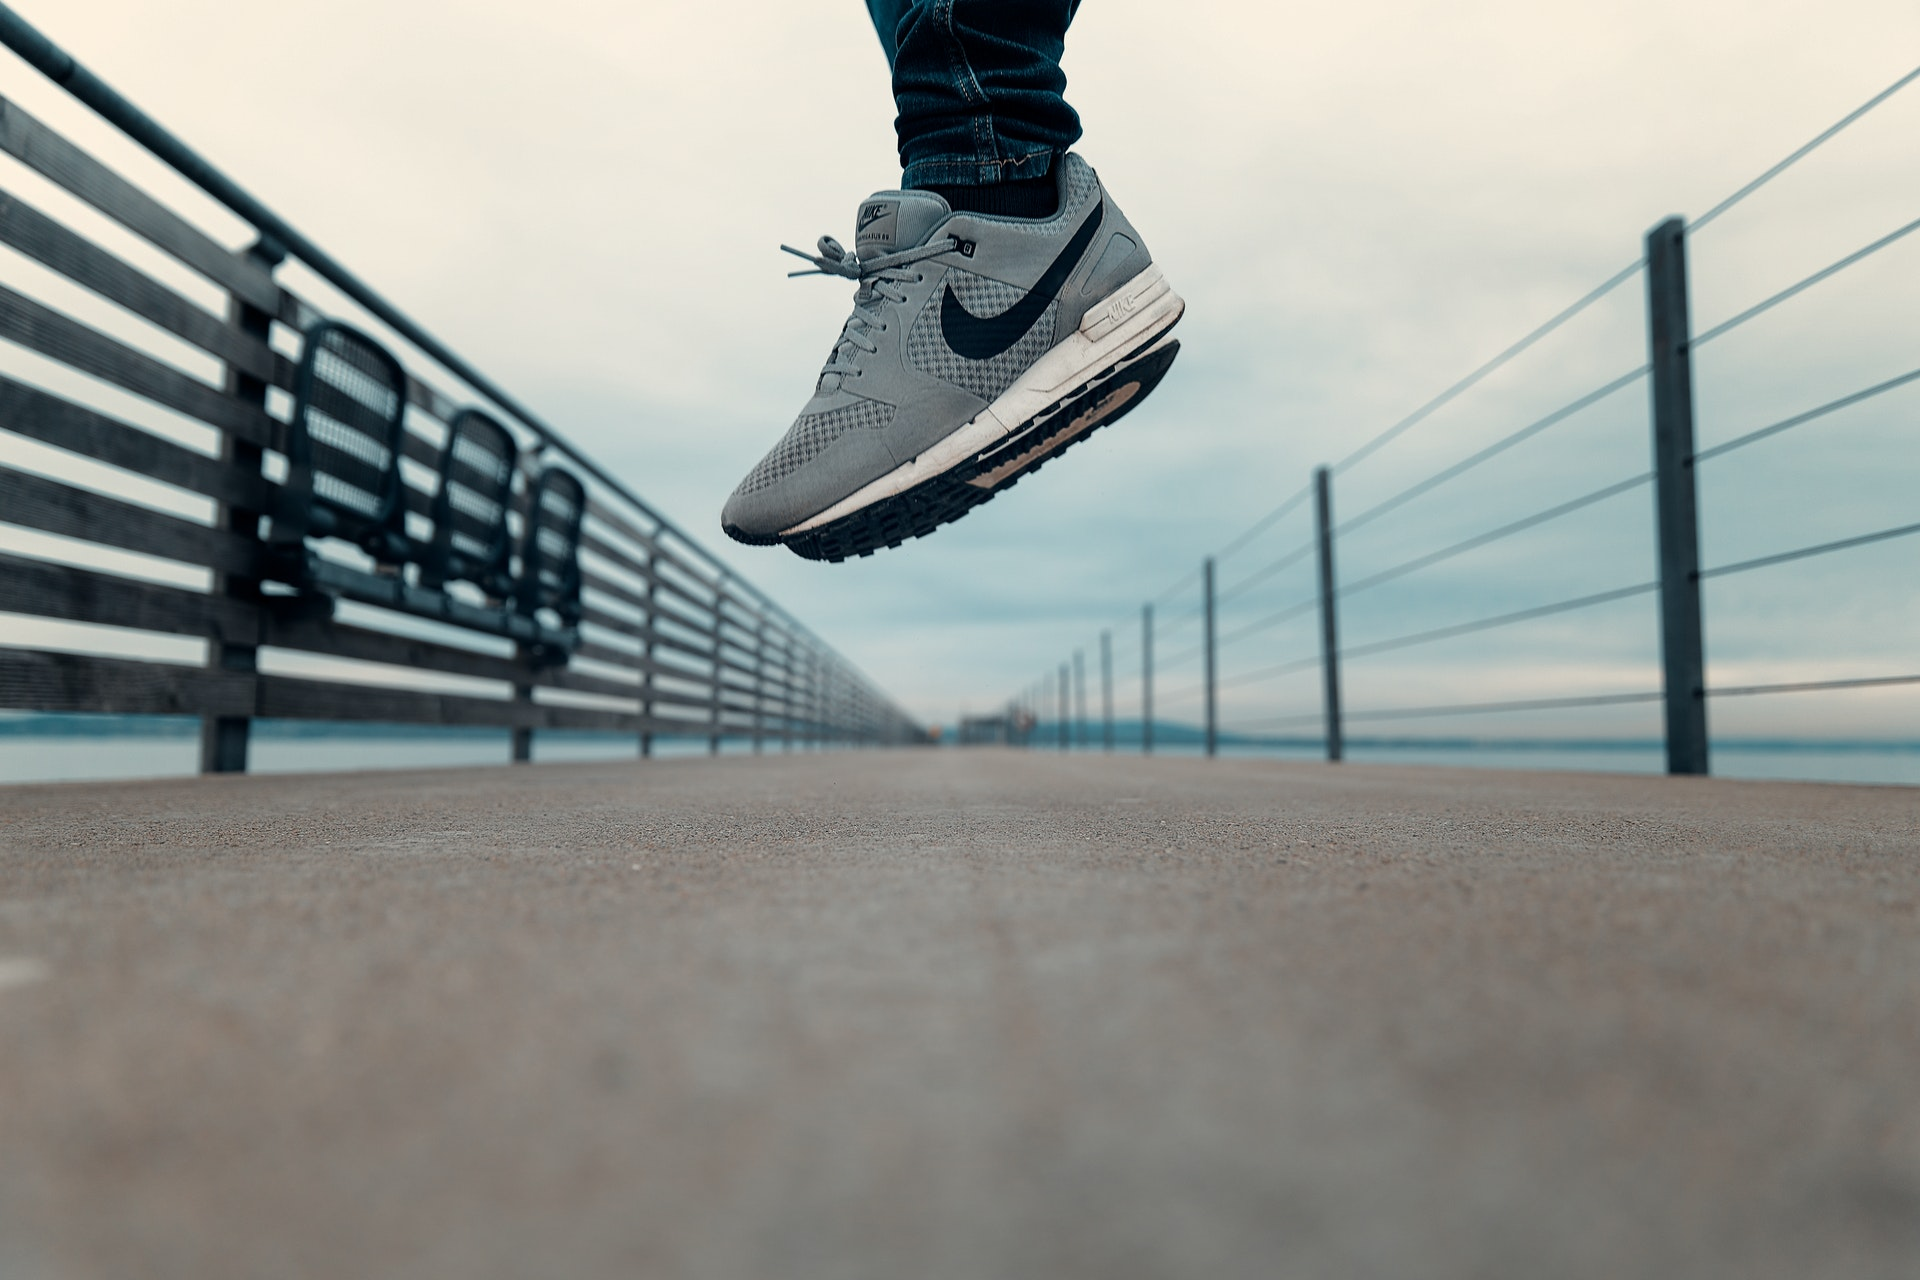 Are Nike shoes really better? Here's the truth.